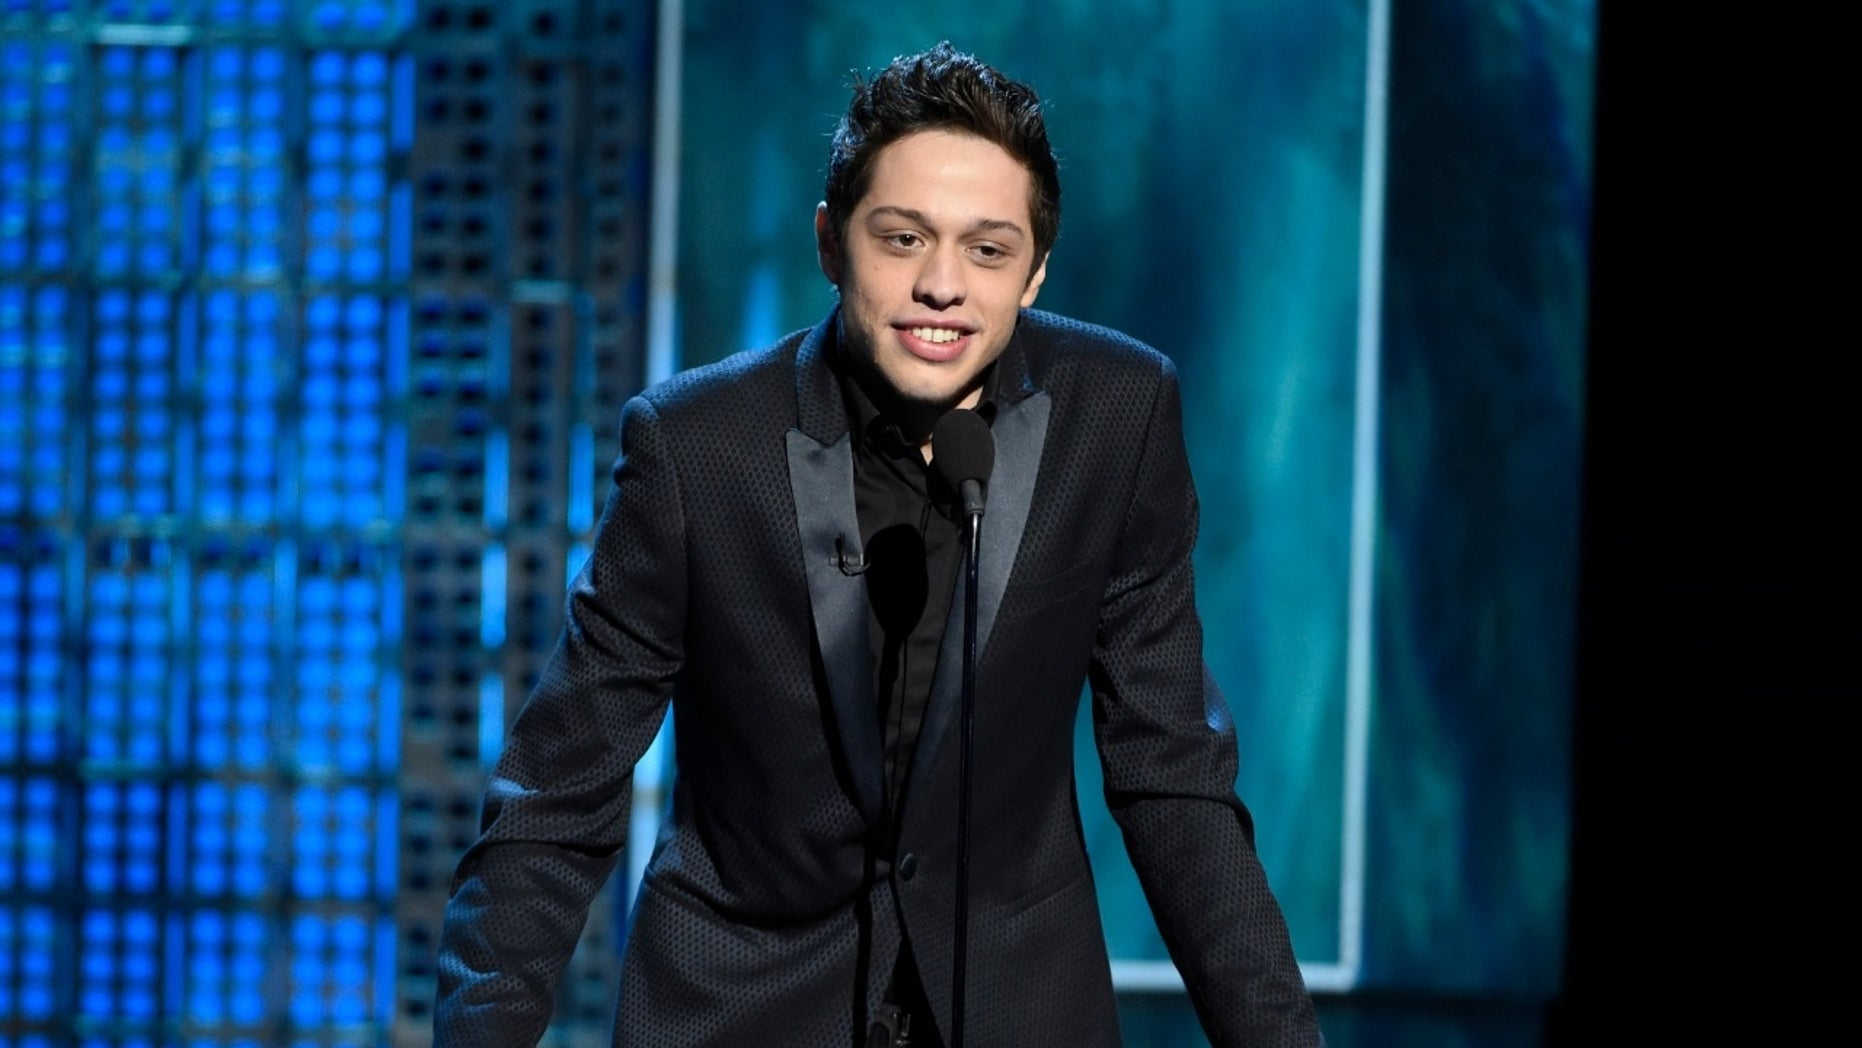 Pete Davidson posted an extremely dark message on Instagram following another post about being honest about mental health.